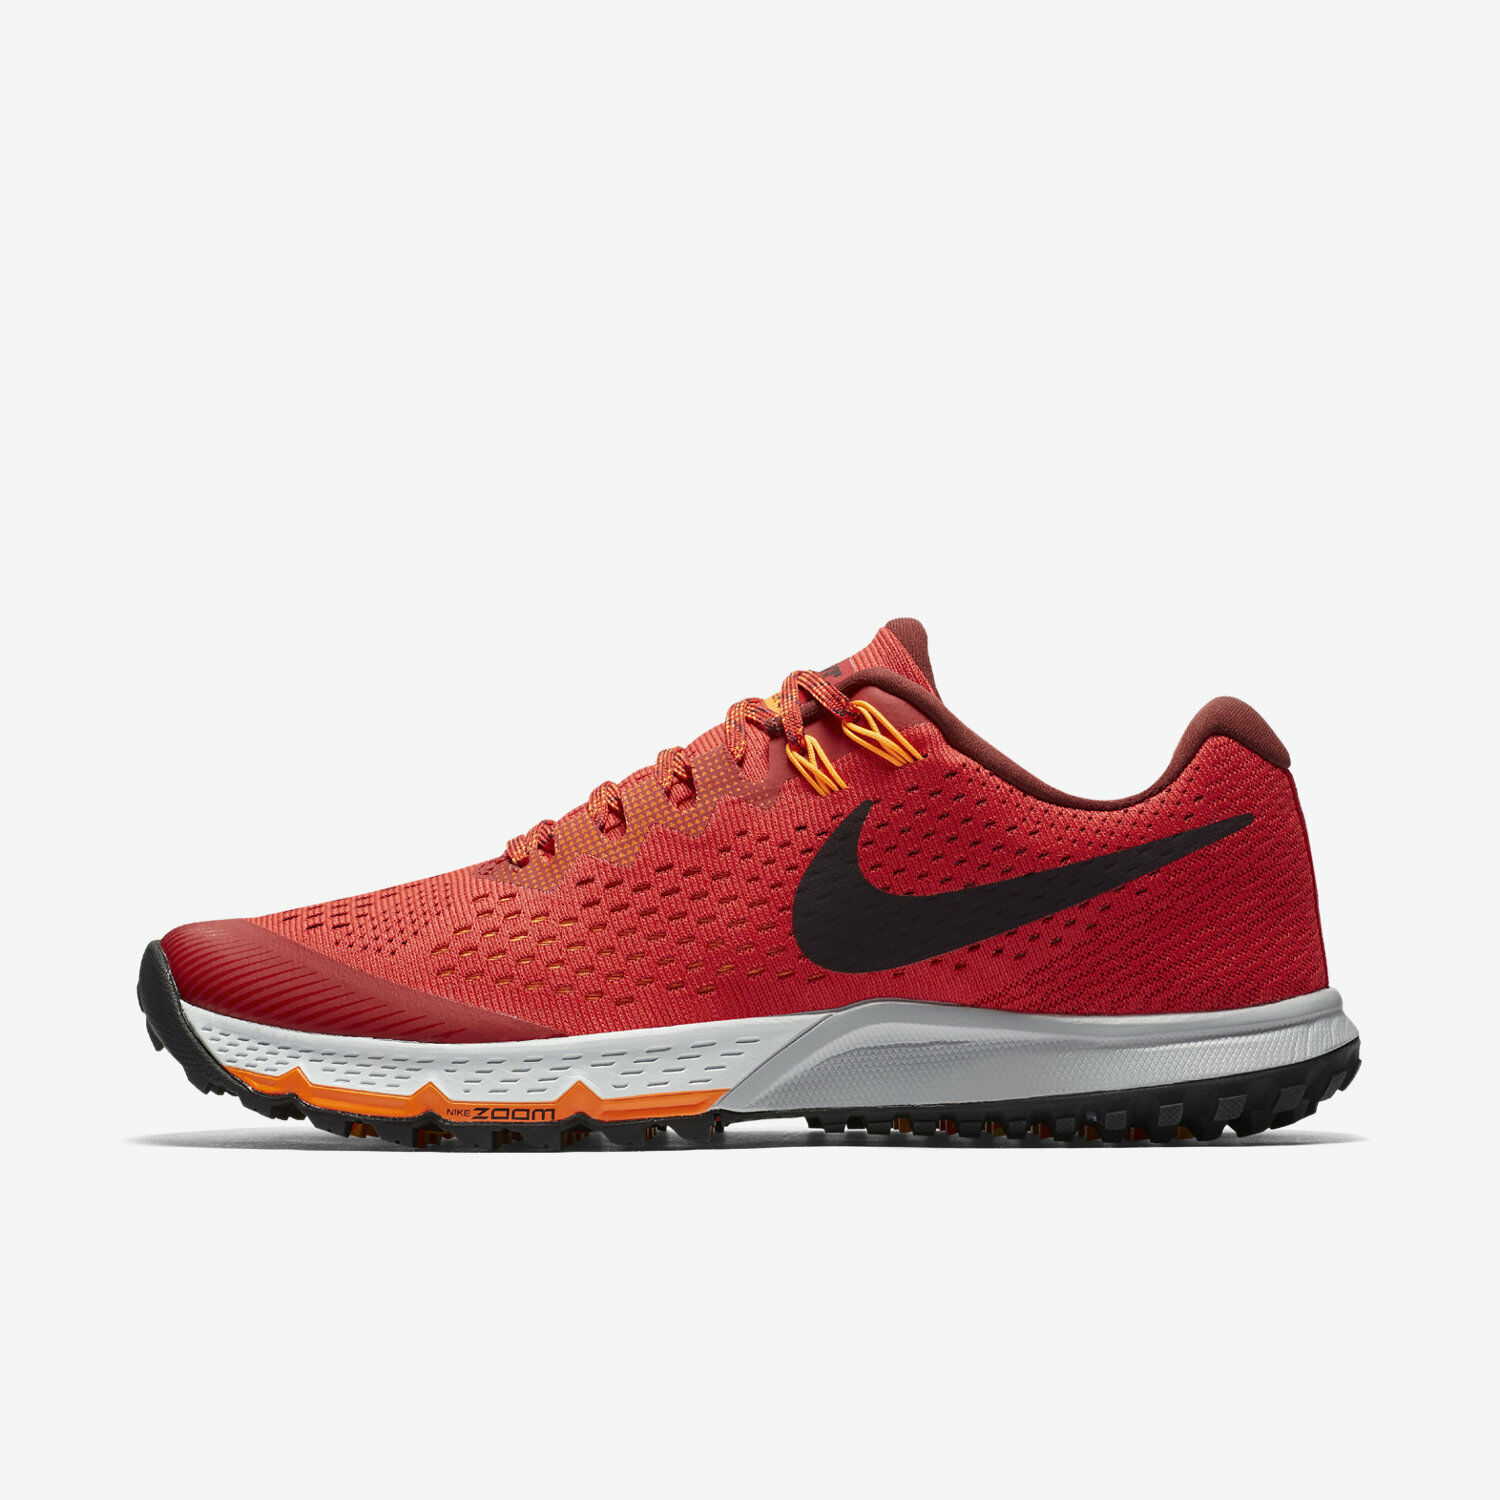 Mns Nike Air Zoom Terra Kiger 4 Sz 10-13 University Red 880563-600 FREE SHIPPING